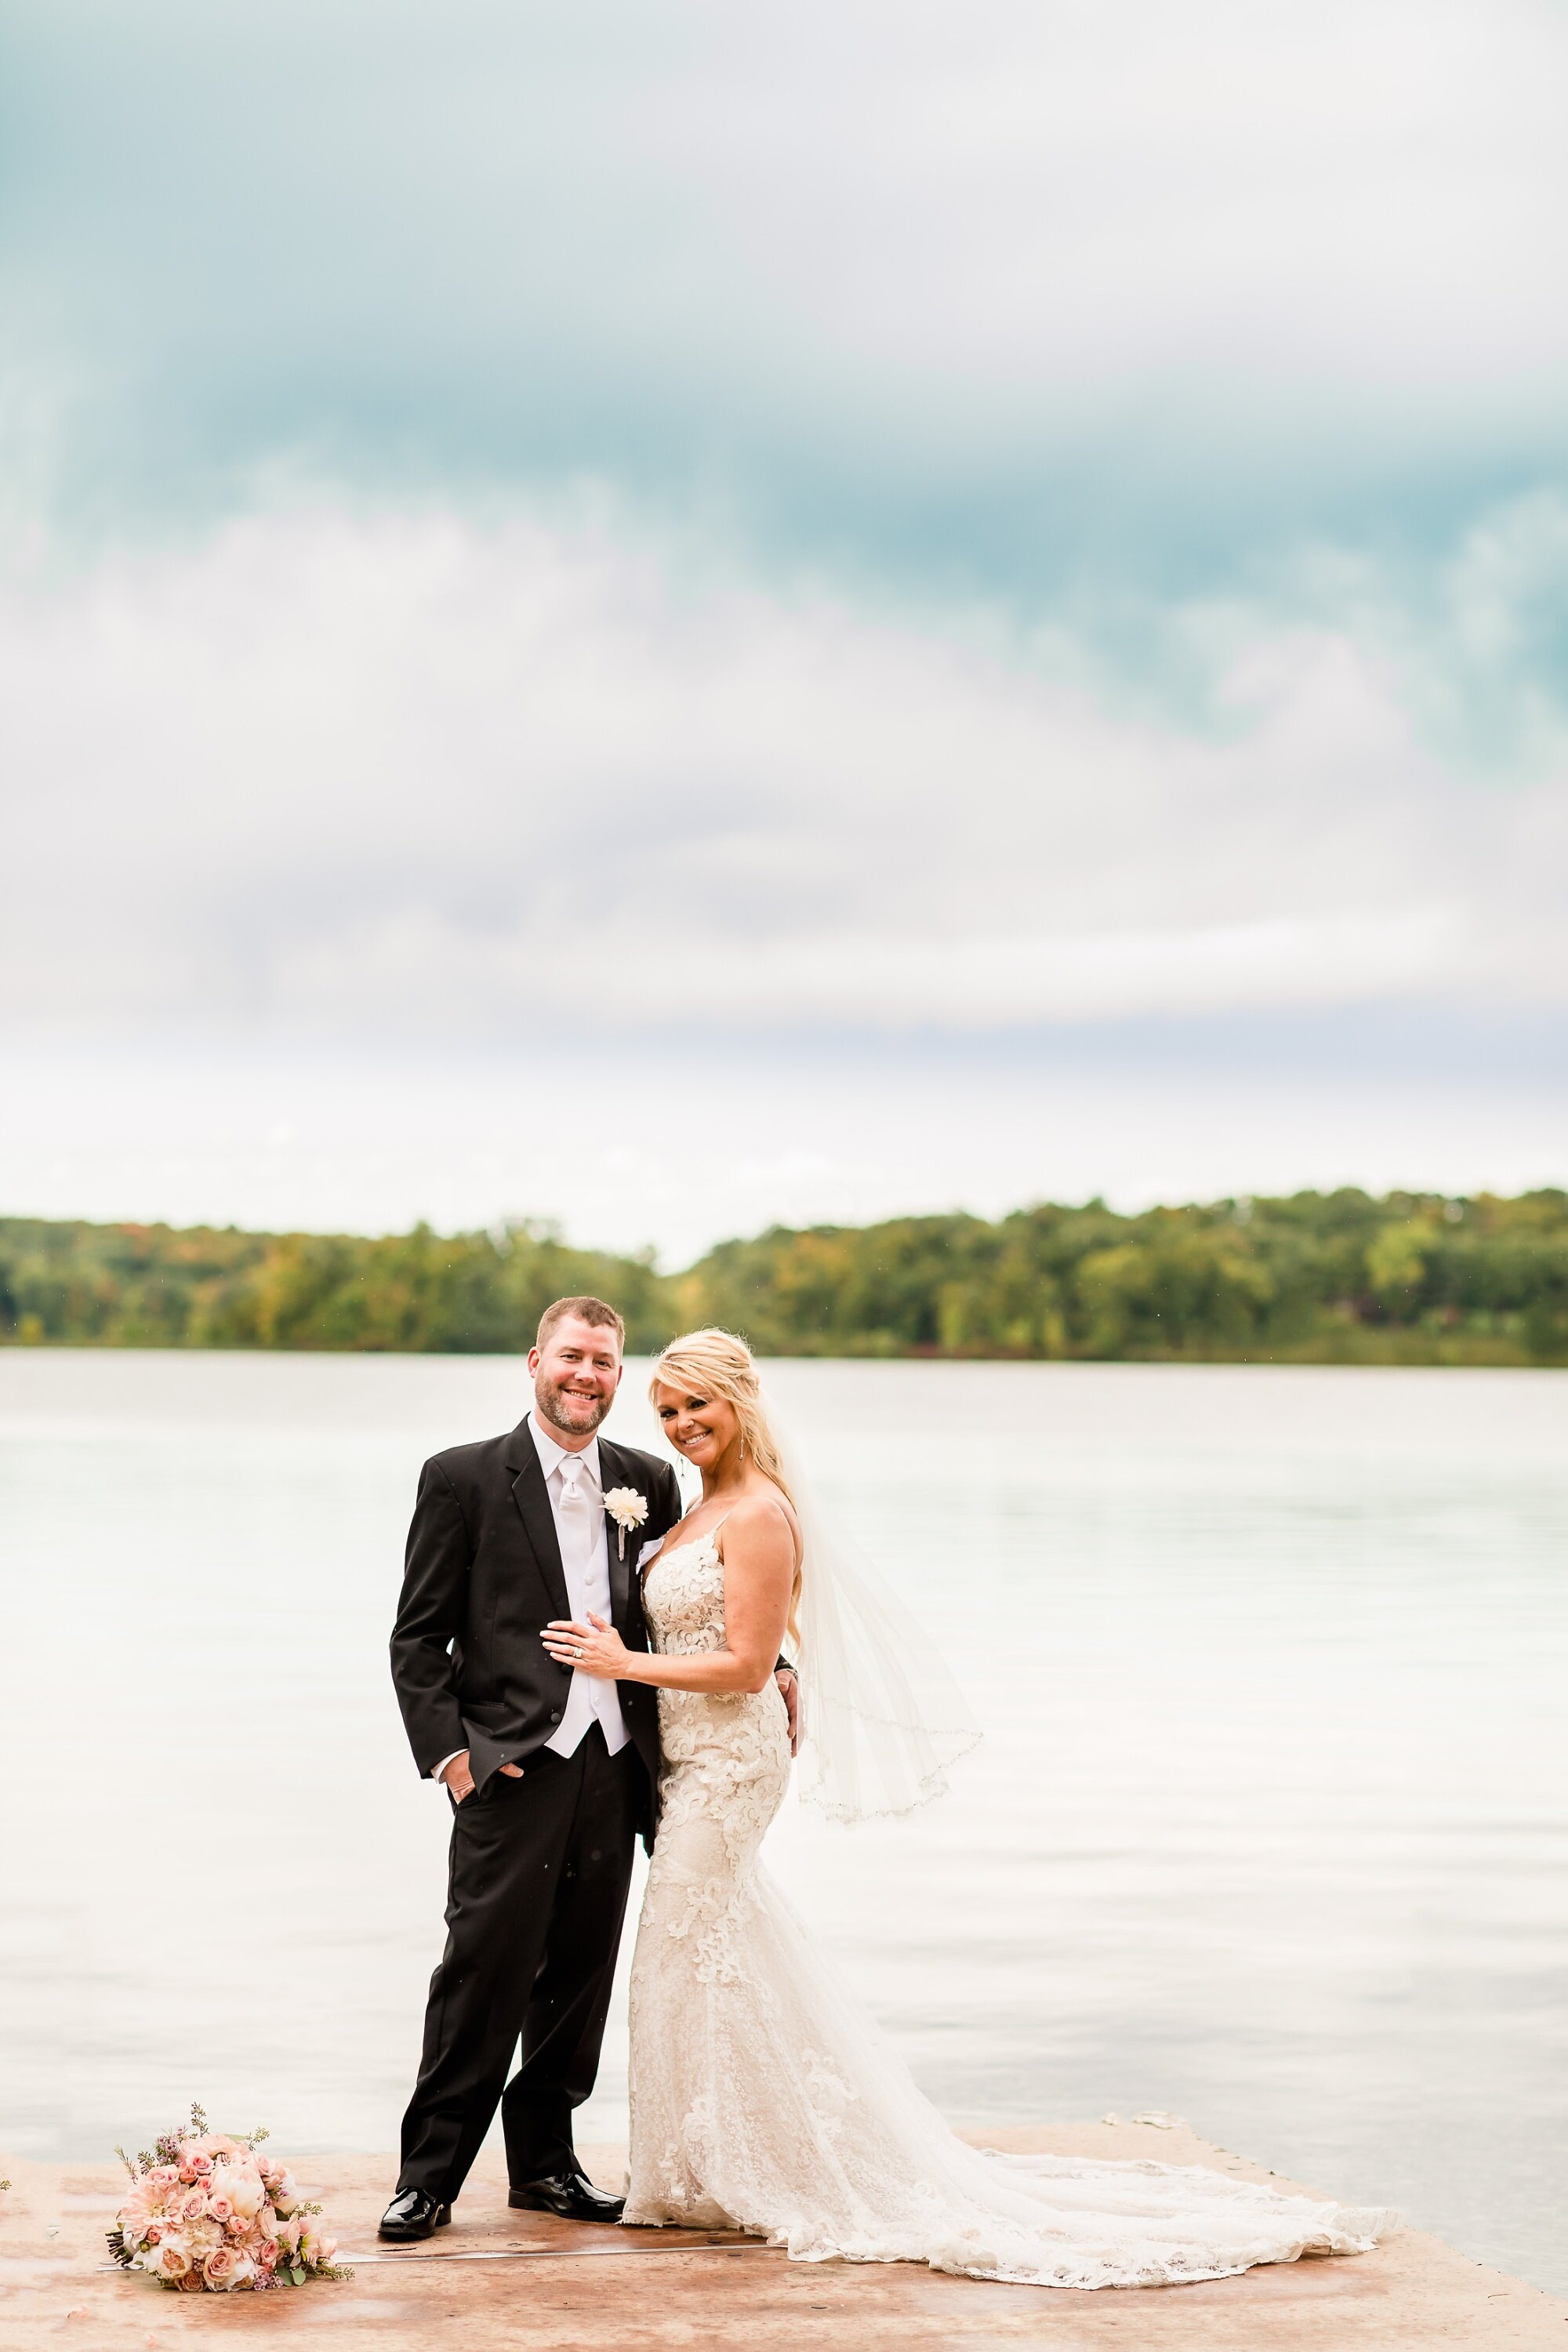 Amber Langerud Photography_Eagle Lake Rustic Styled Outdoor Wedding in Minnesota_6860.jpg